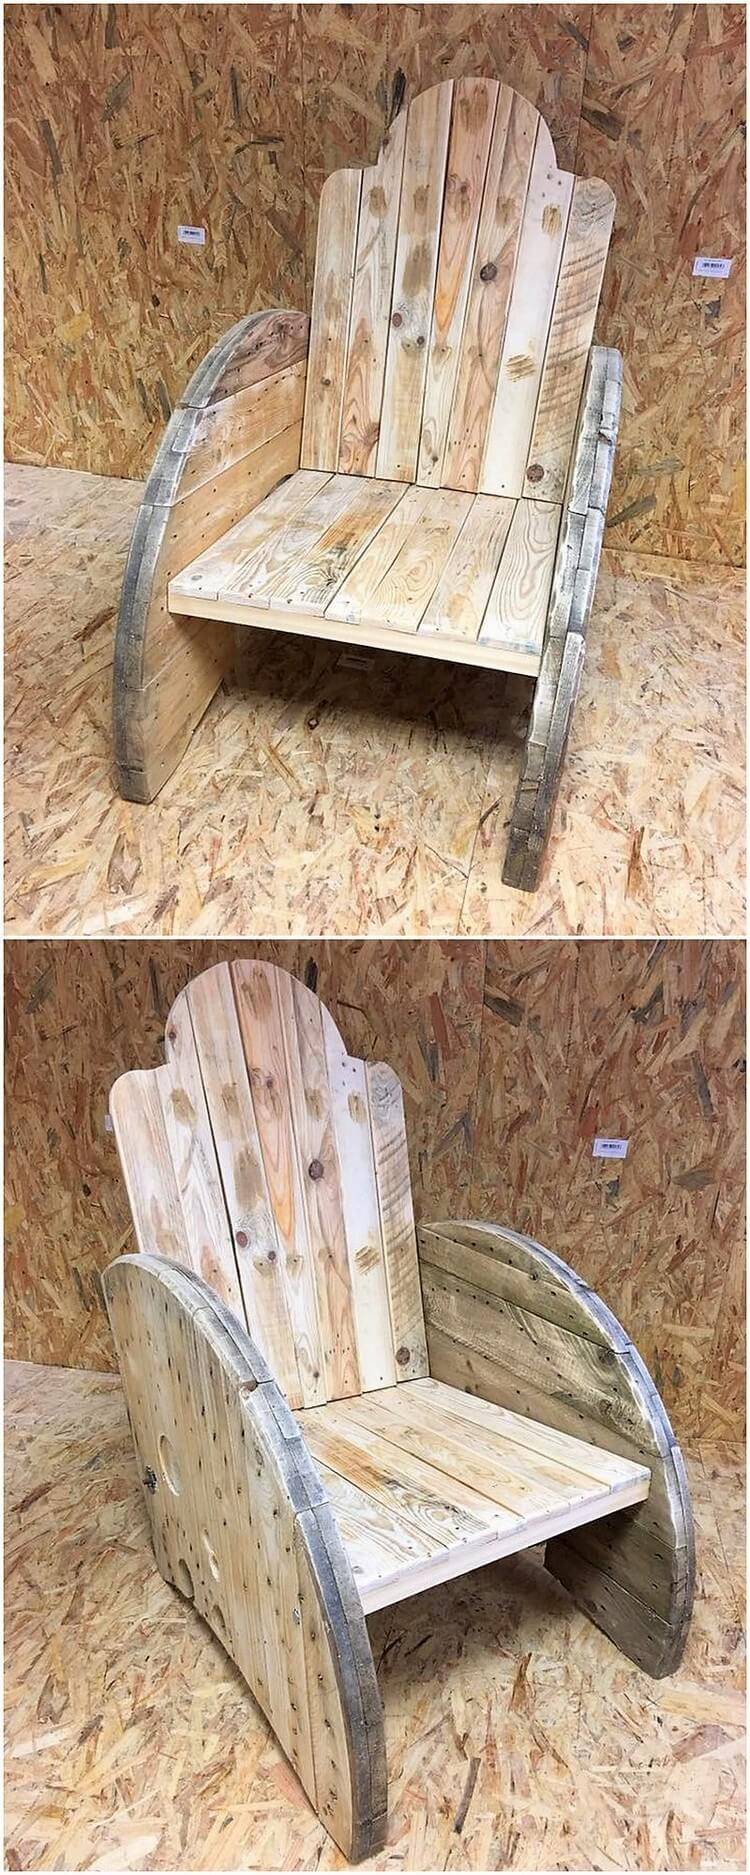 DIY Easy Wood Pallet Crafts to Make and Sell   Pallet Wood ...